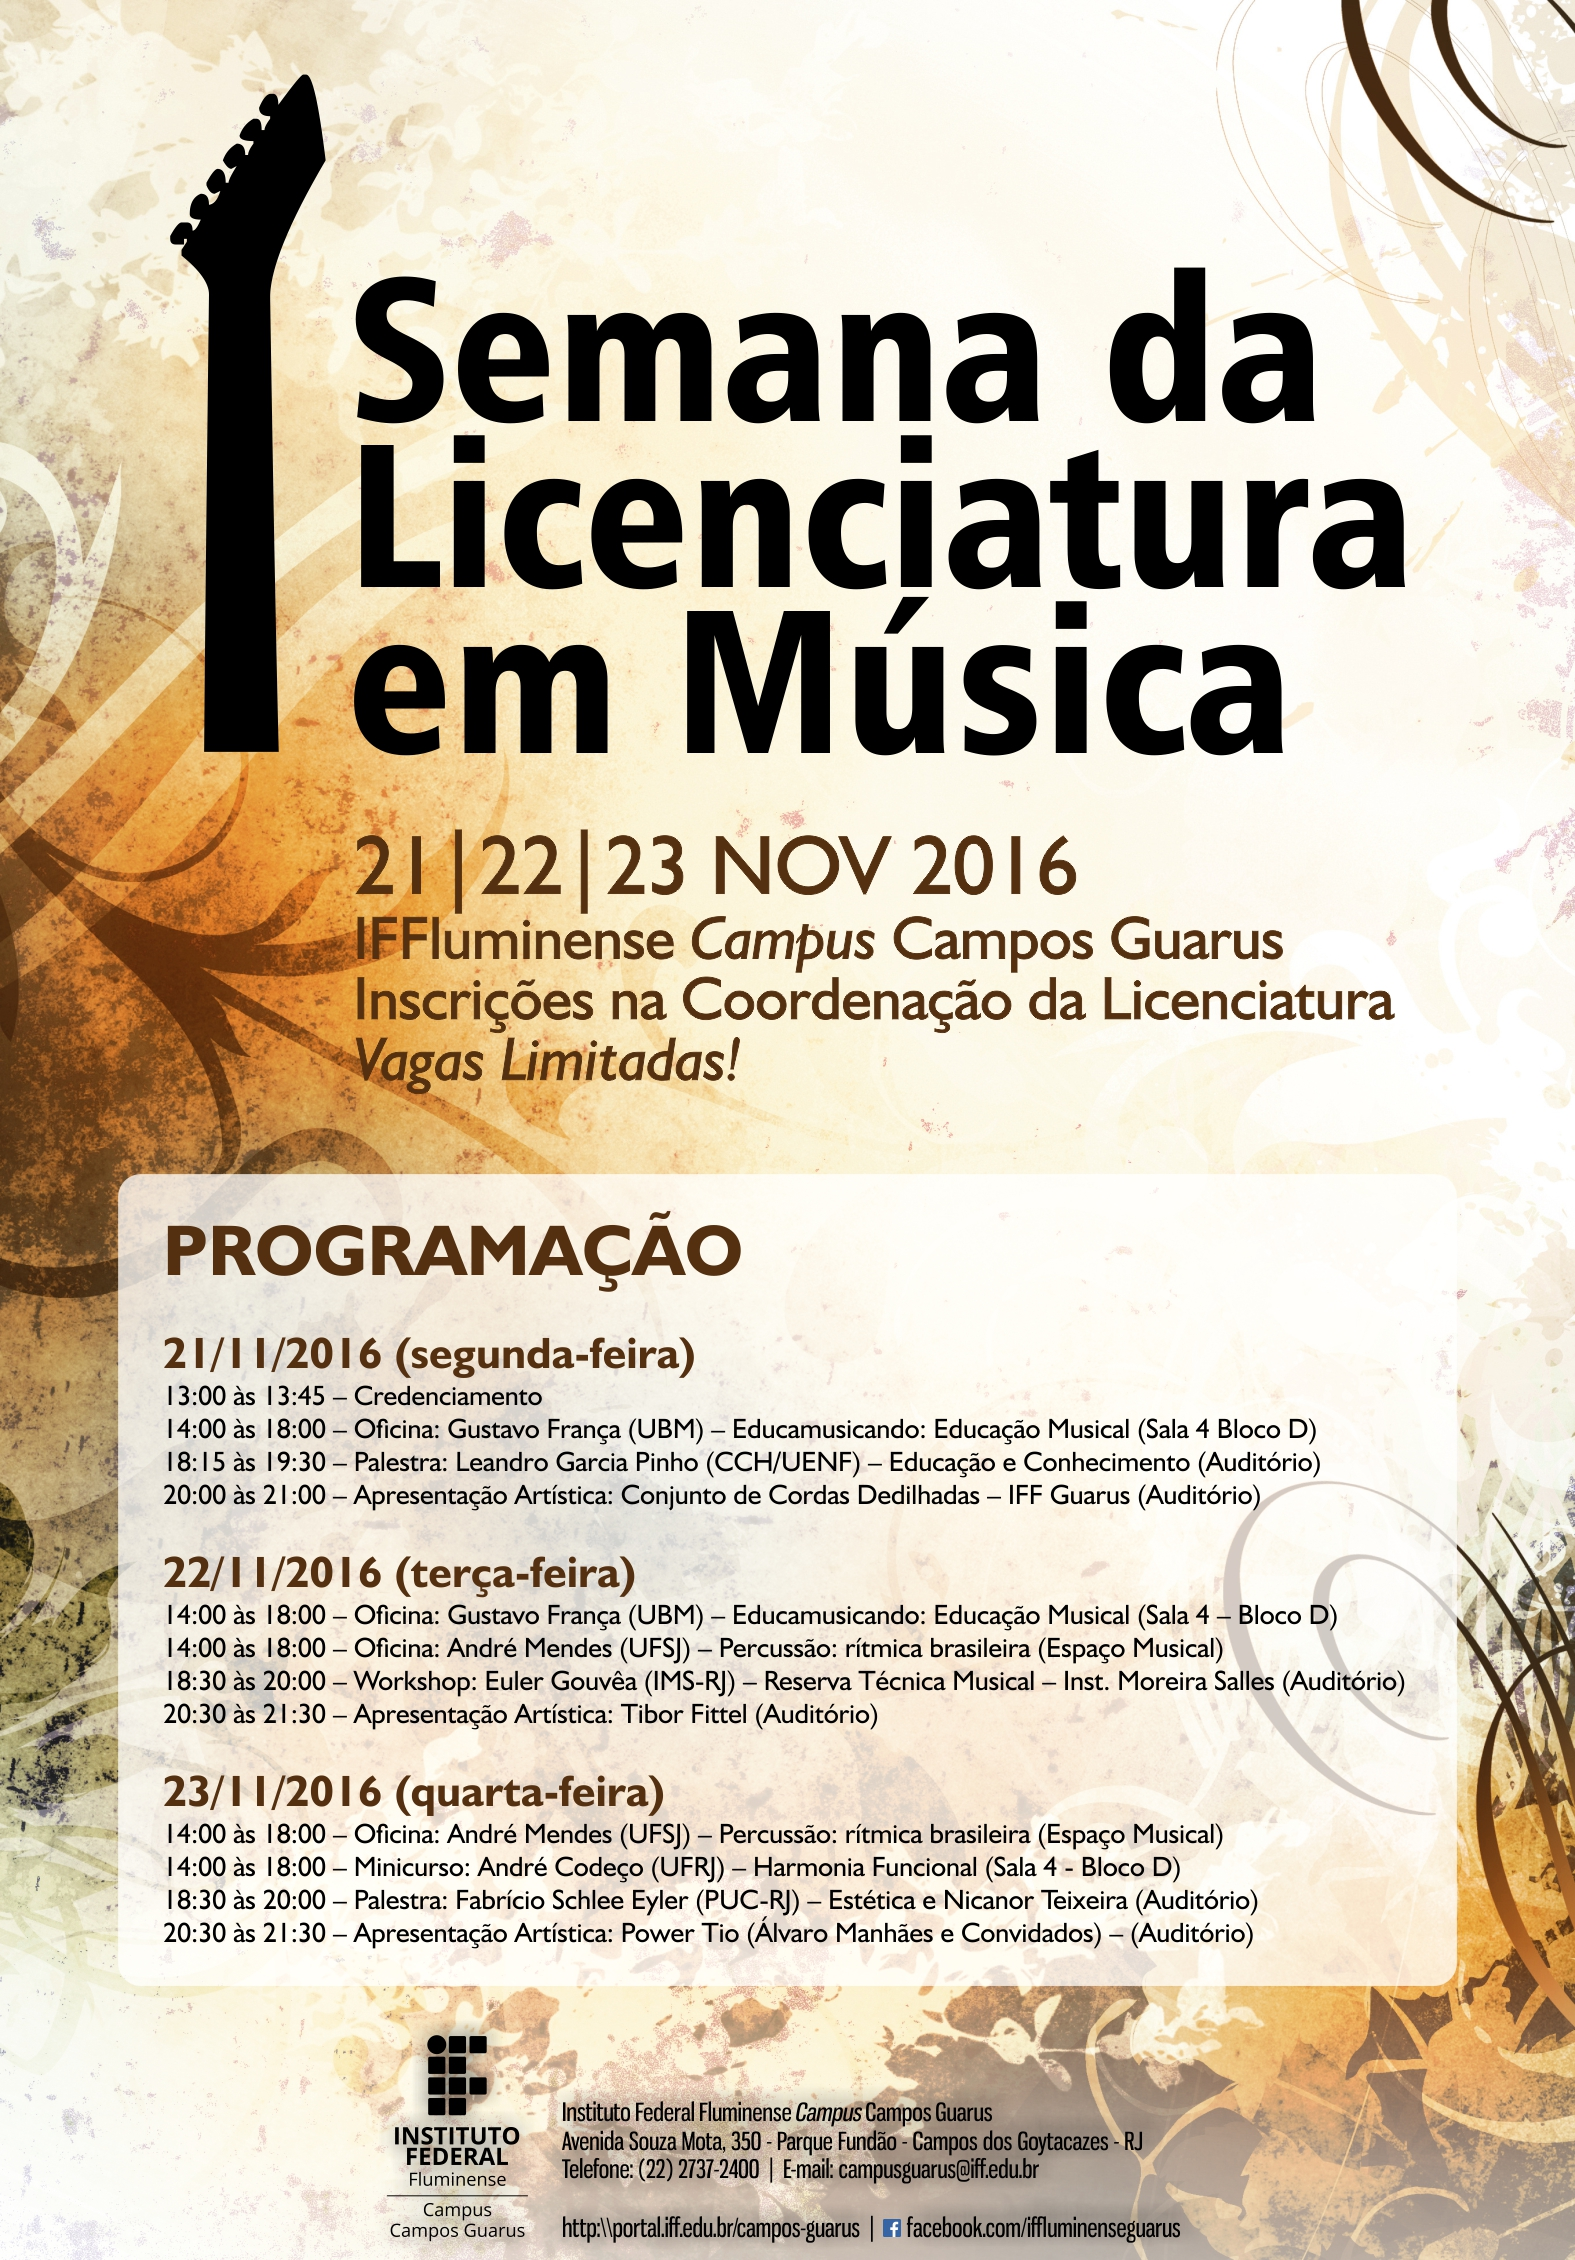 Cartaz - I Semana da Licenciatura em Música do Campus Campos Guarus